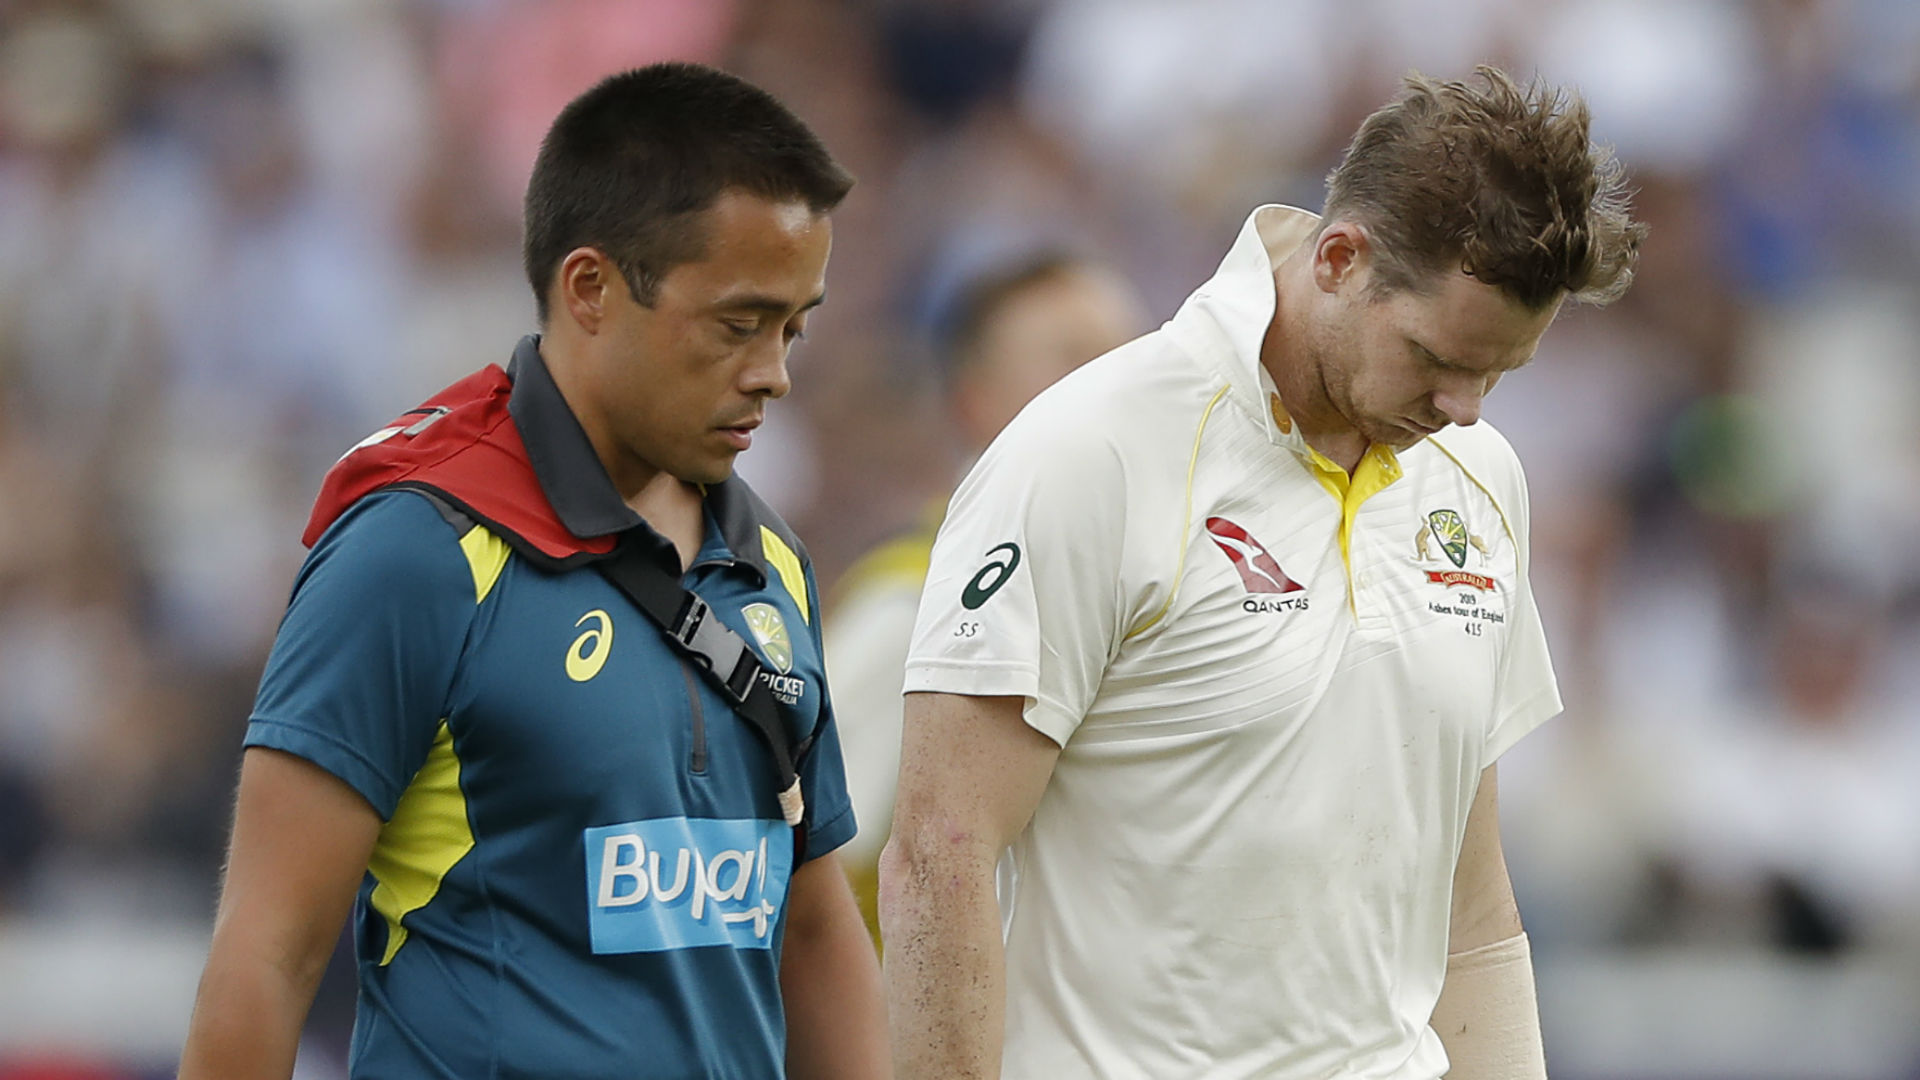 Ashes 2019: Q and A on concussion following Smith's injury